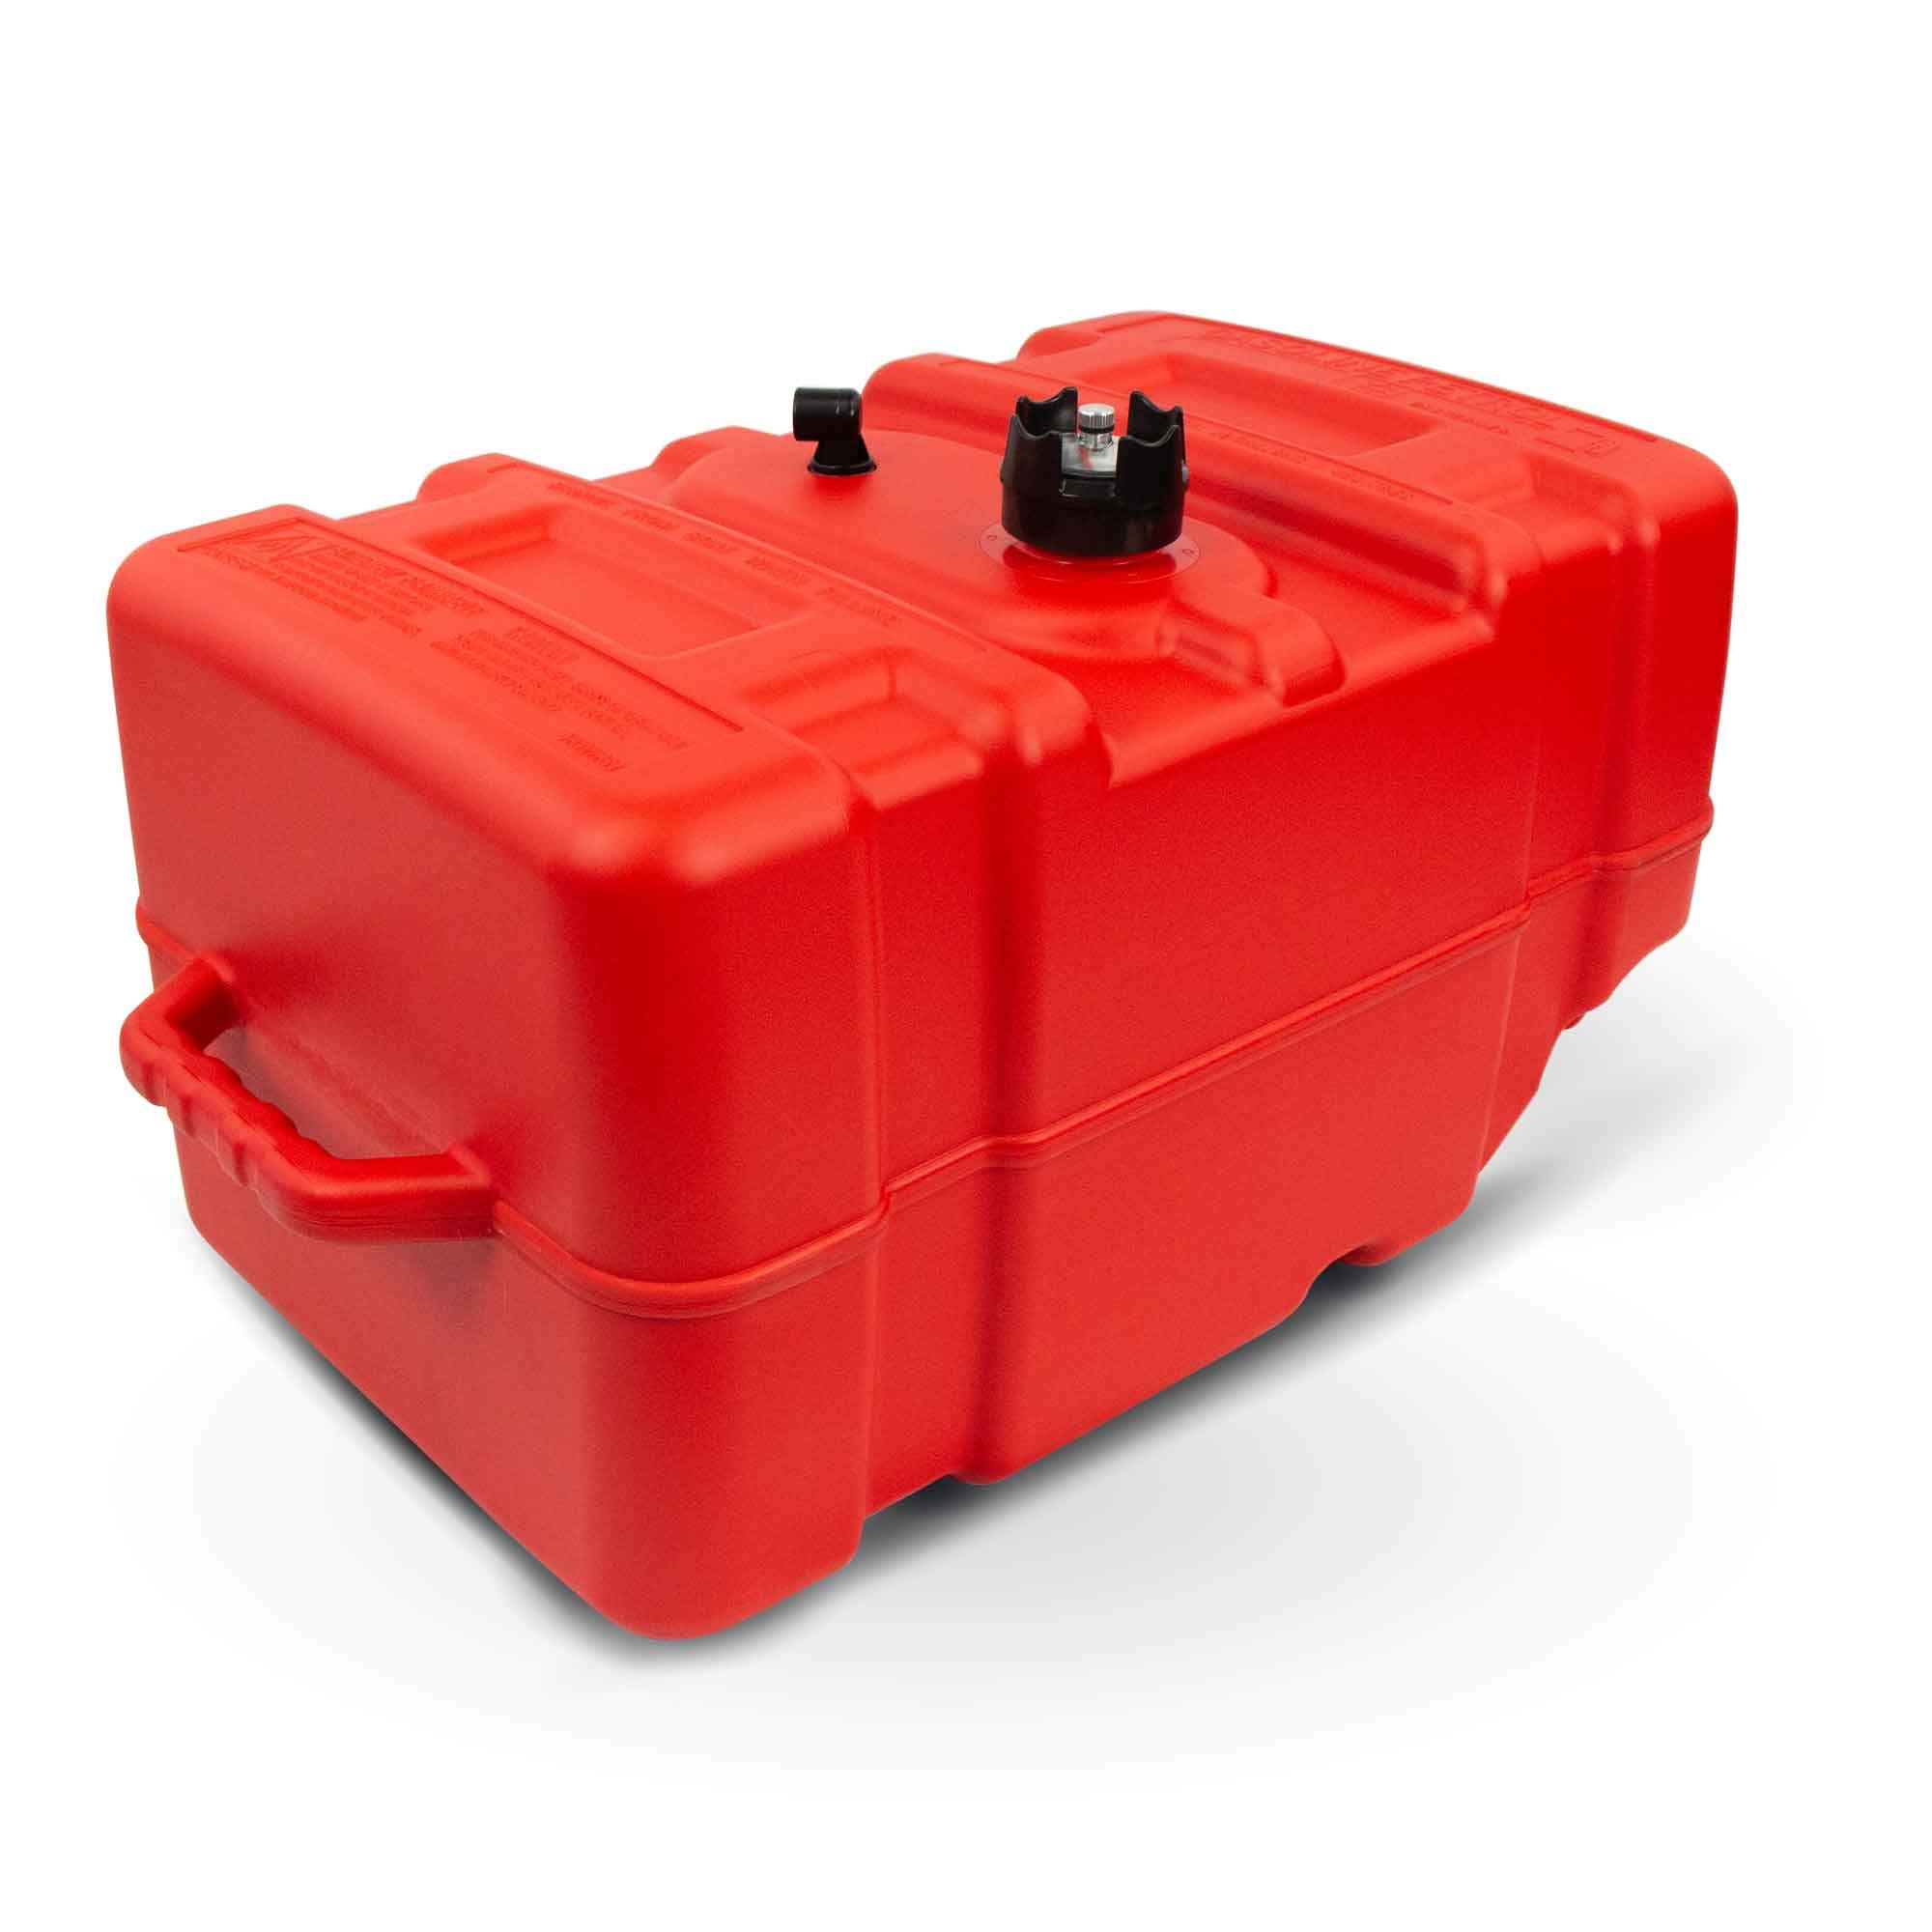 Five Oceans 12 Gallon Portable Fuel Tank Low-Permeation w/Gauge FO-4269 by Five Oceans